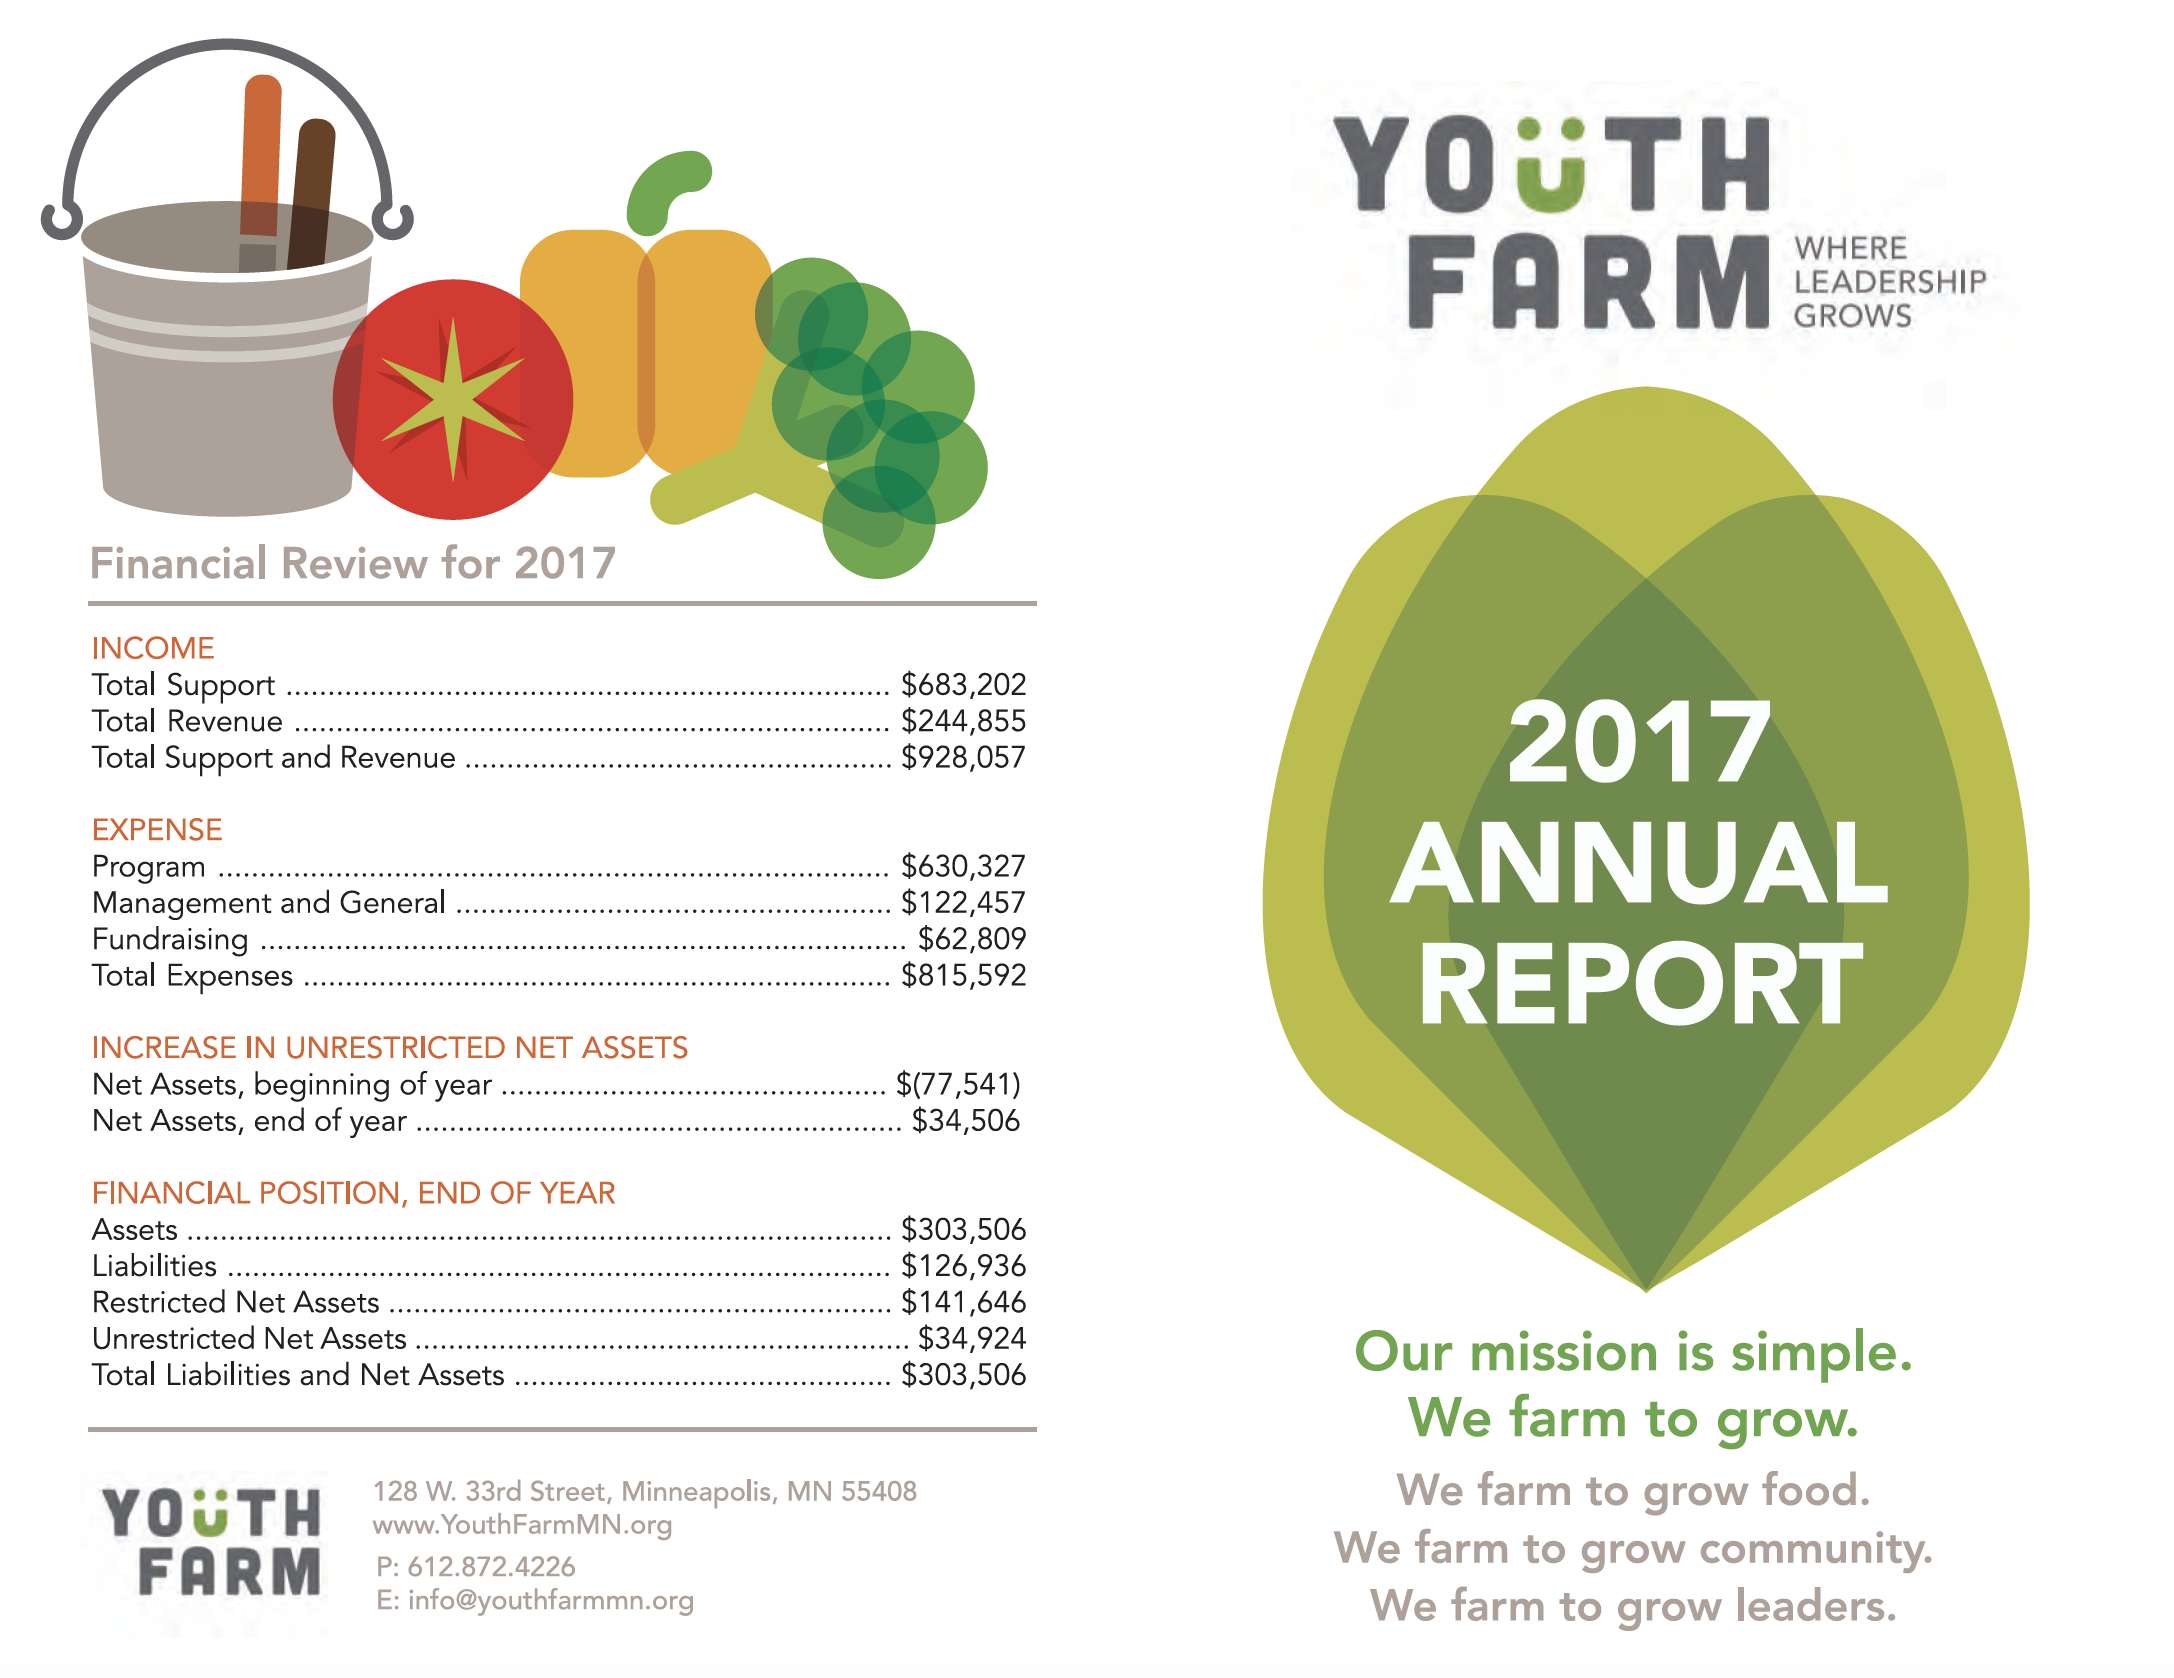 Youth Farm Annual Report 2017